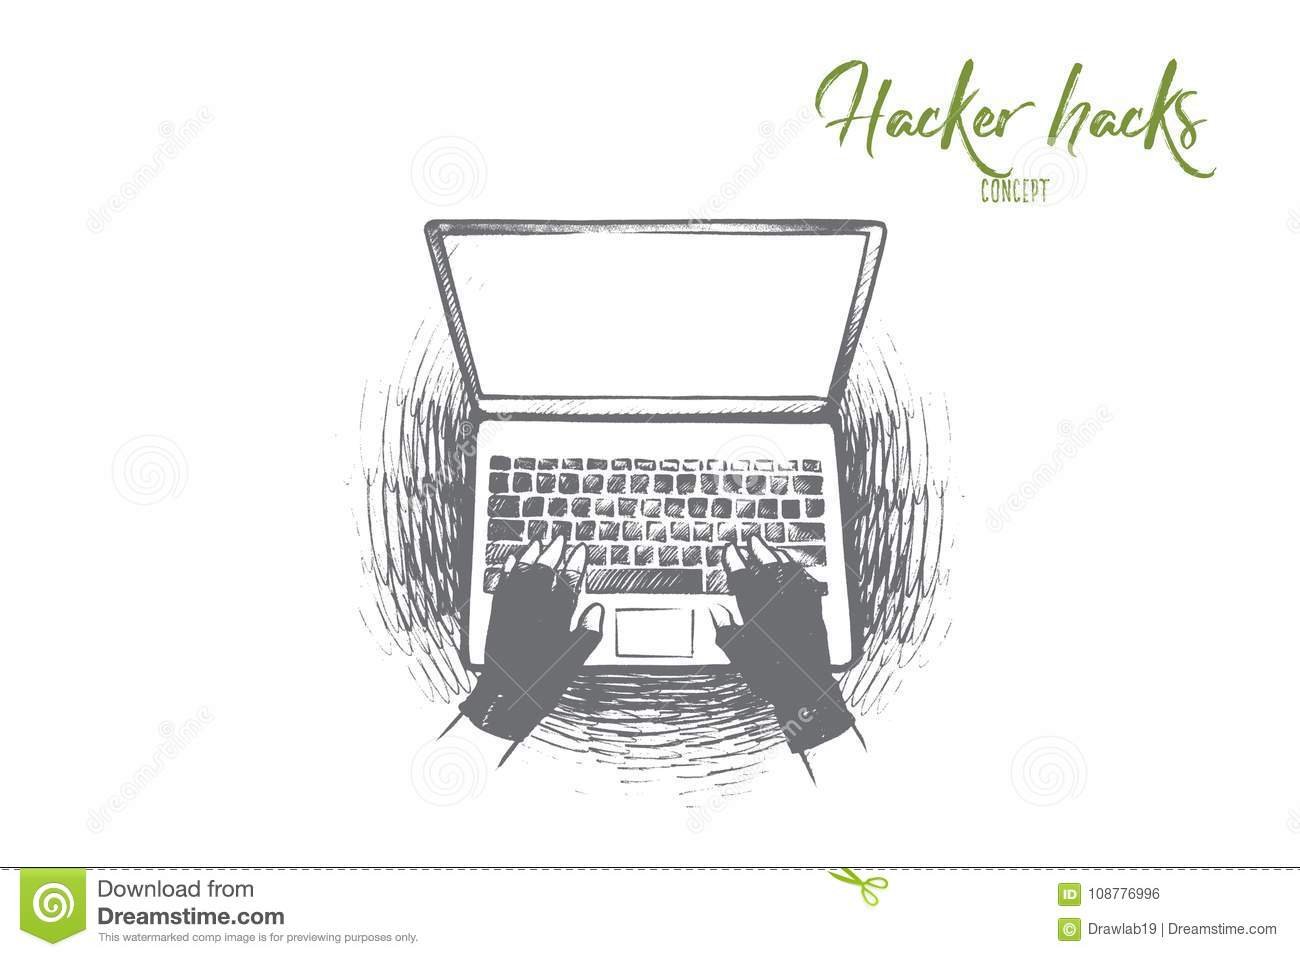 Hacker Hack Concept  Hand Drawn Isolated Vector  Stock Vector